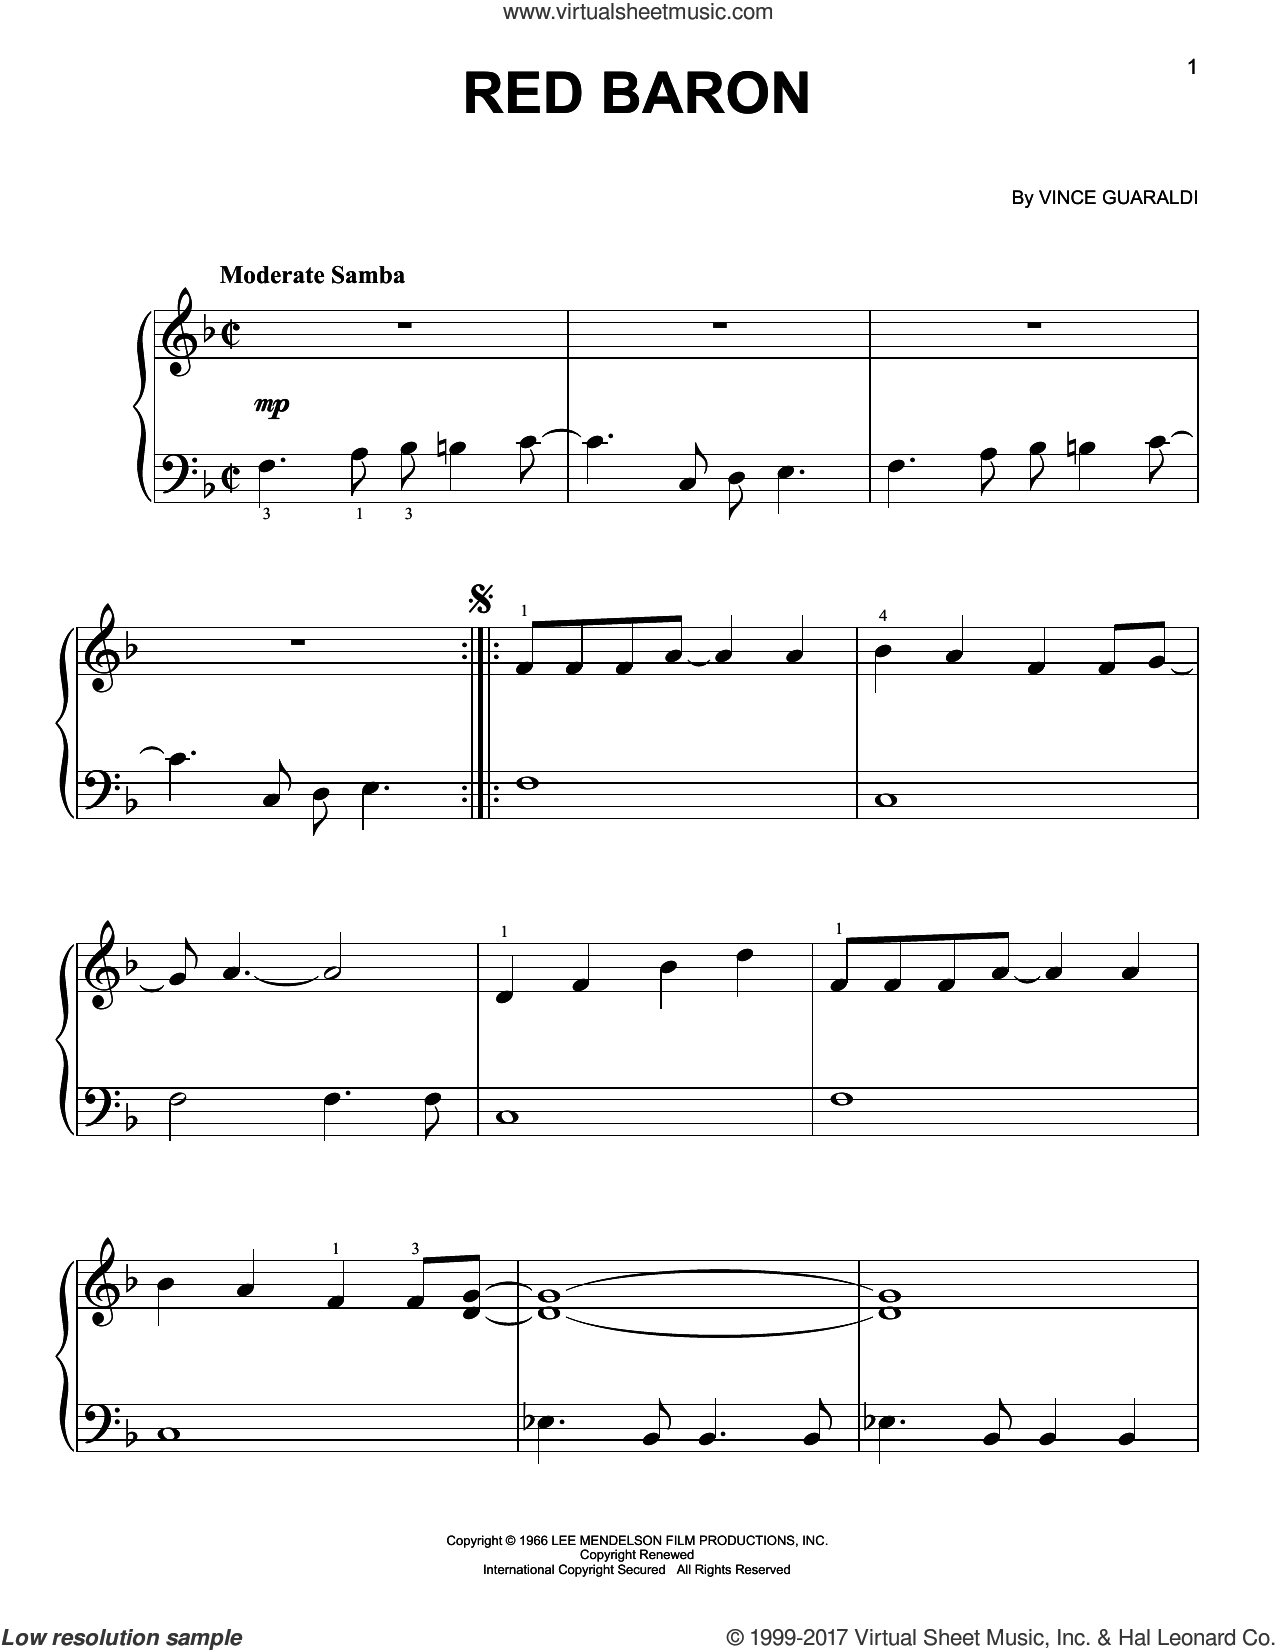 Red Baron sheet music for piano solo by Vince Guaraldi, easy skill level